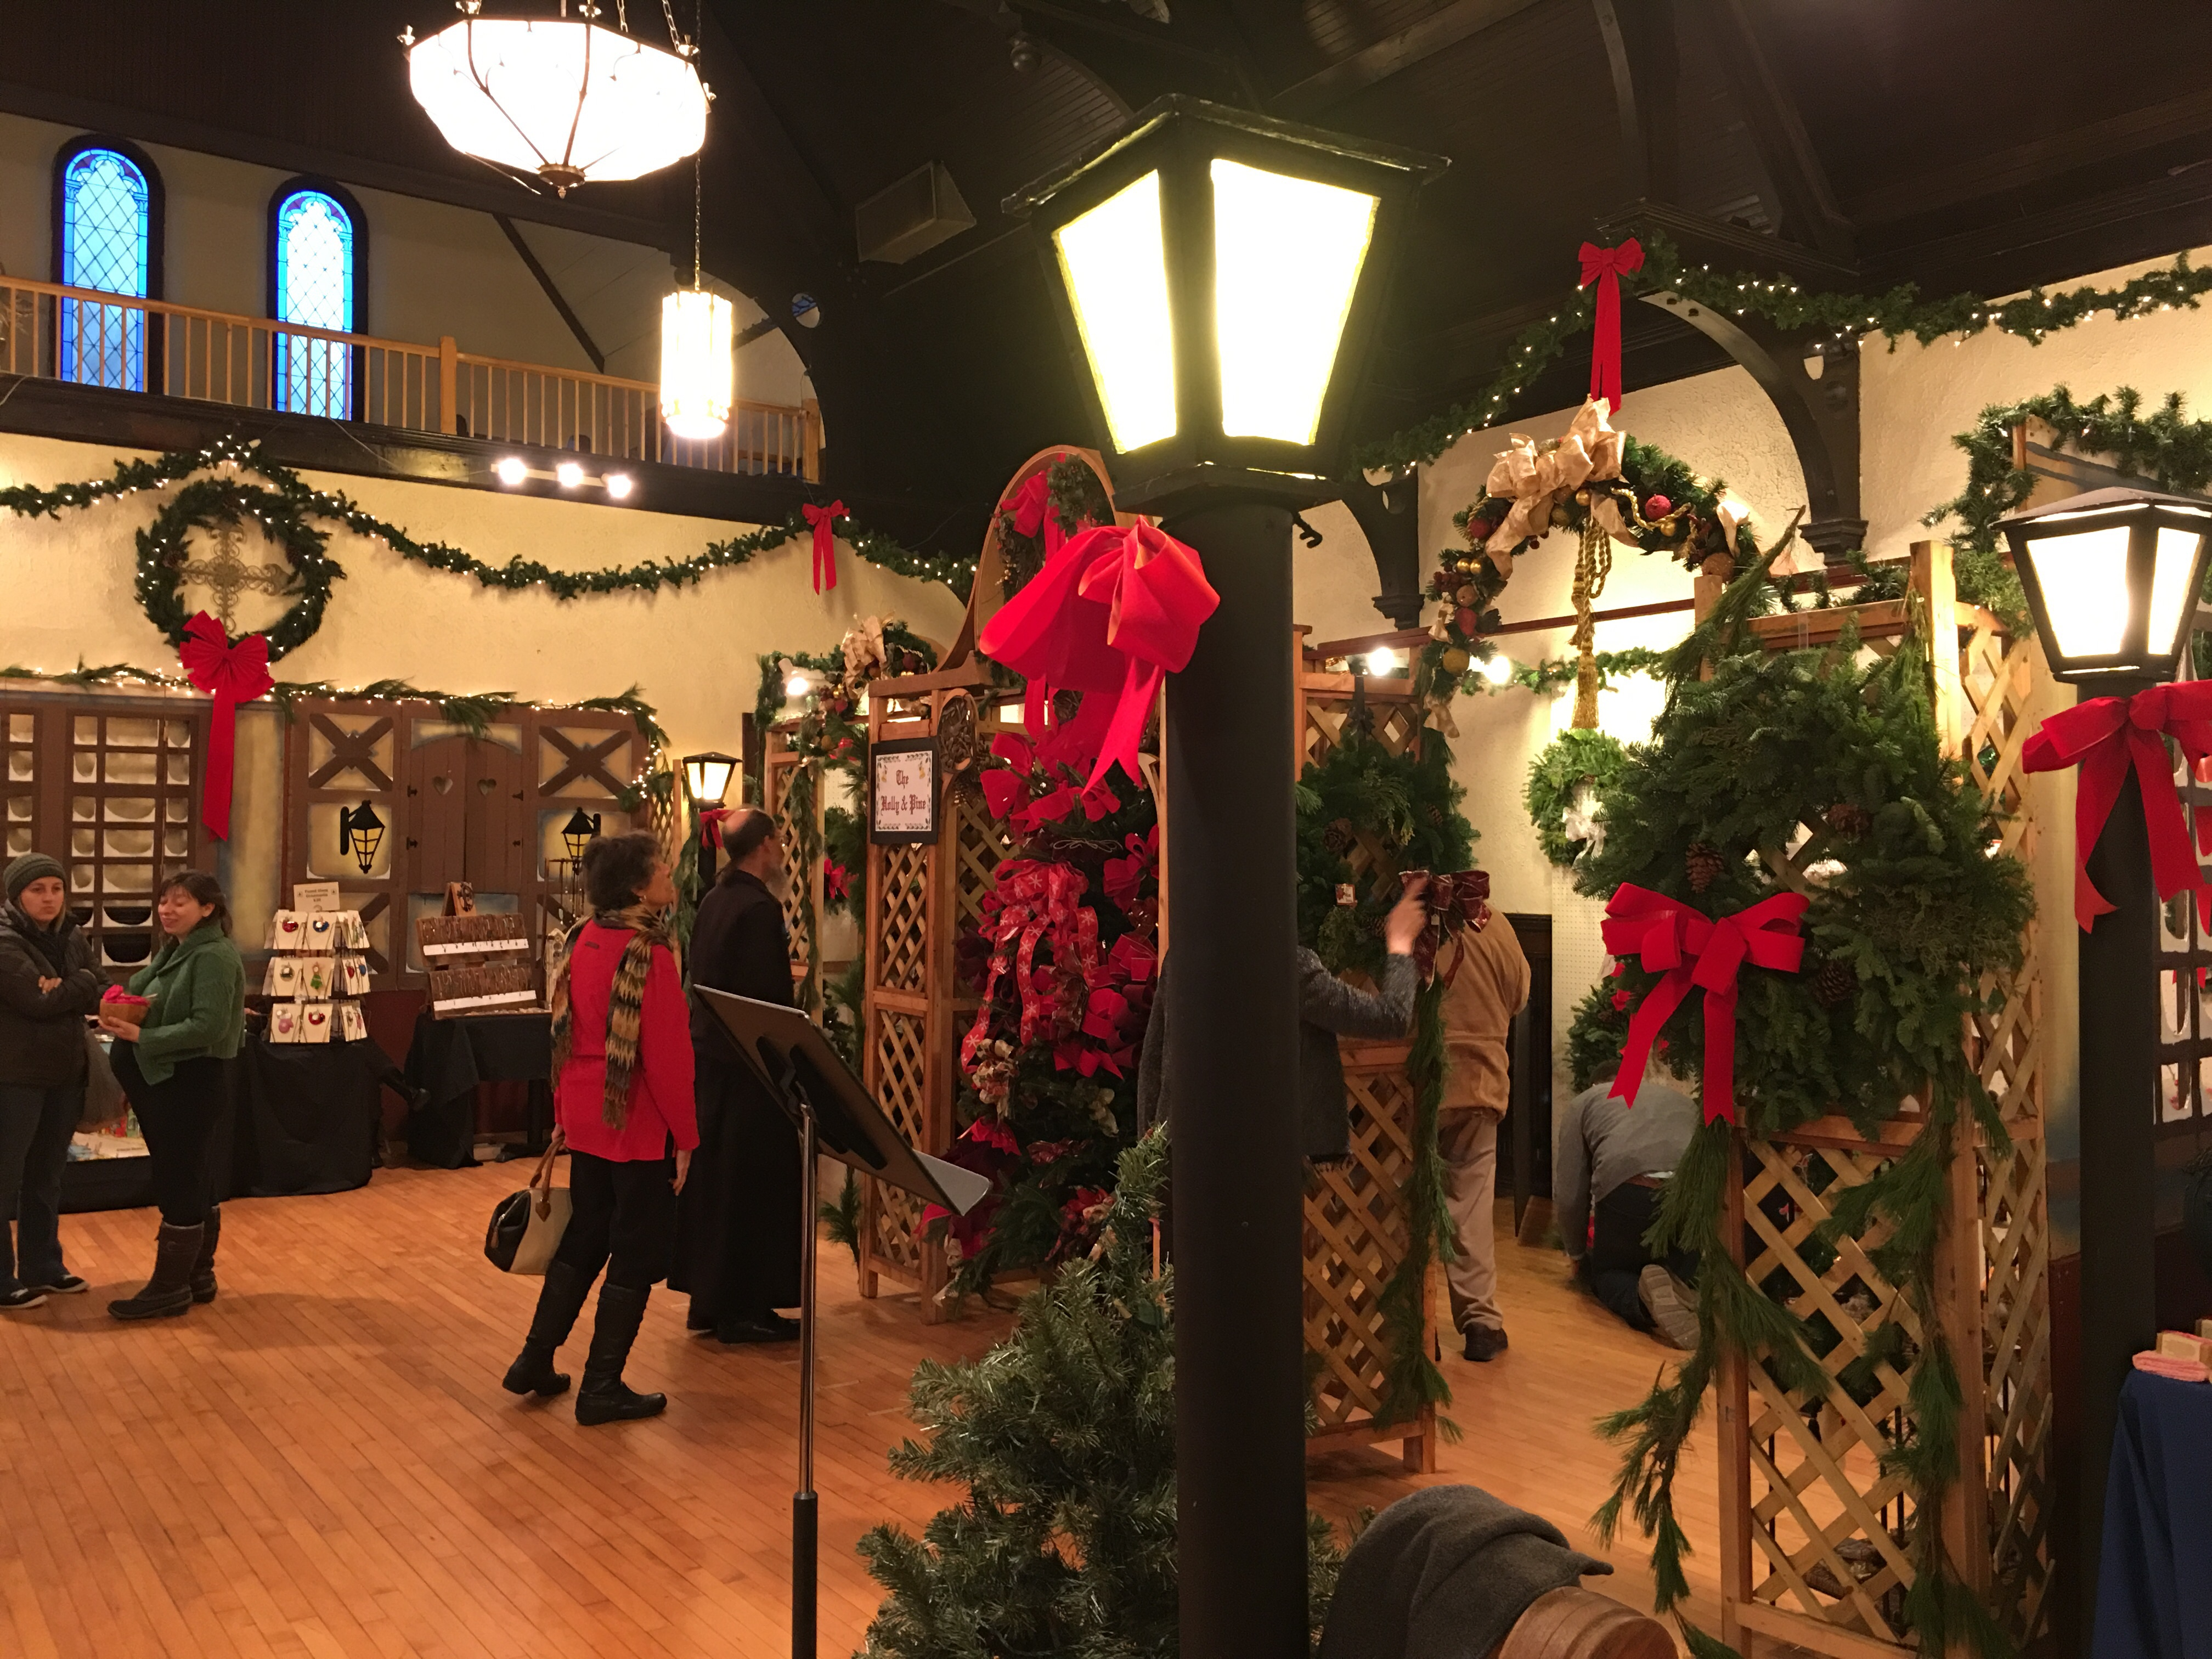 An annual Christmas tradition for my mom and me is a visit to The Old World Christmas Village & Market the first Friday in December.